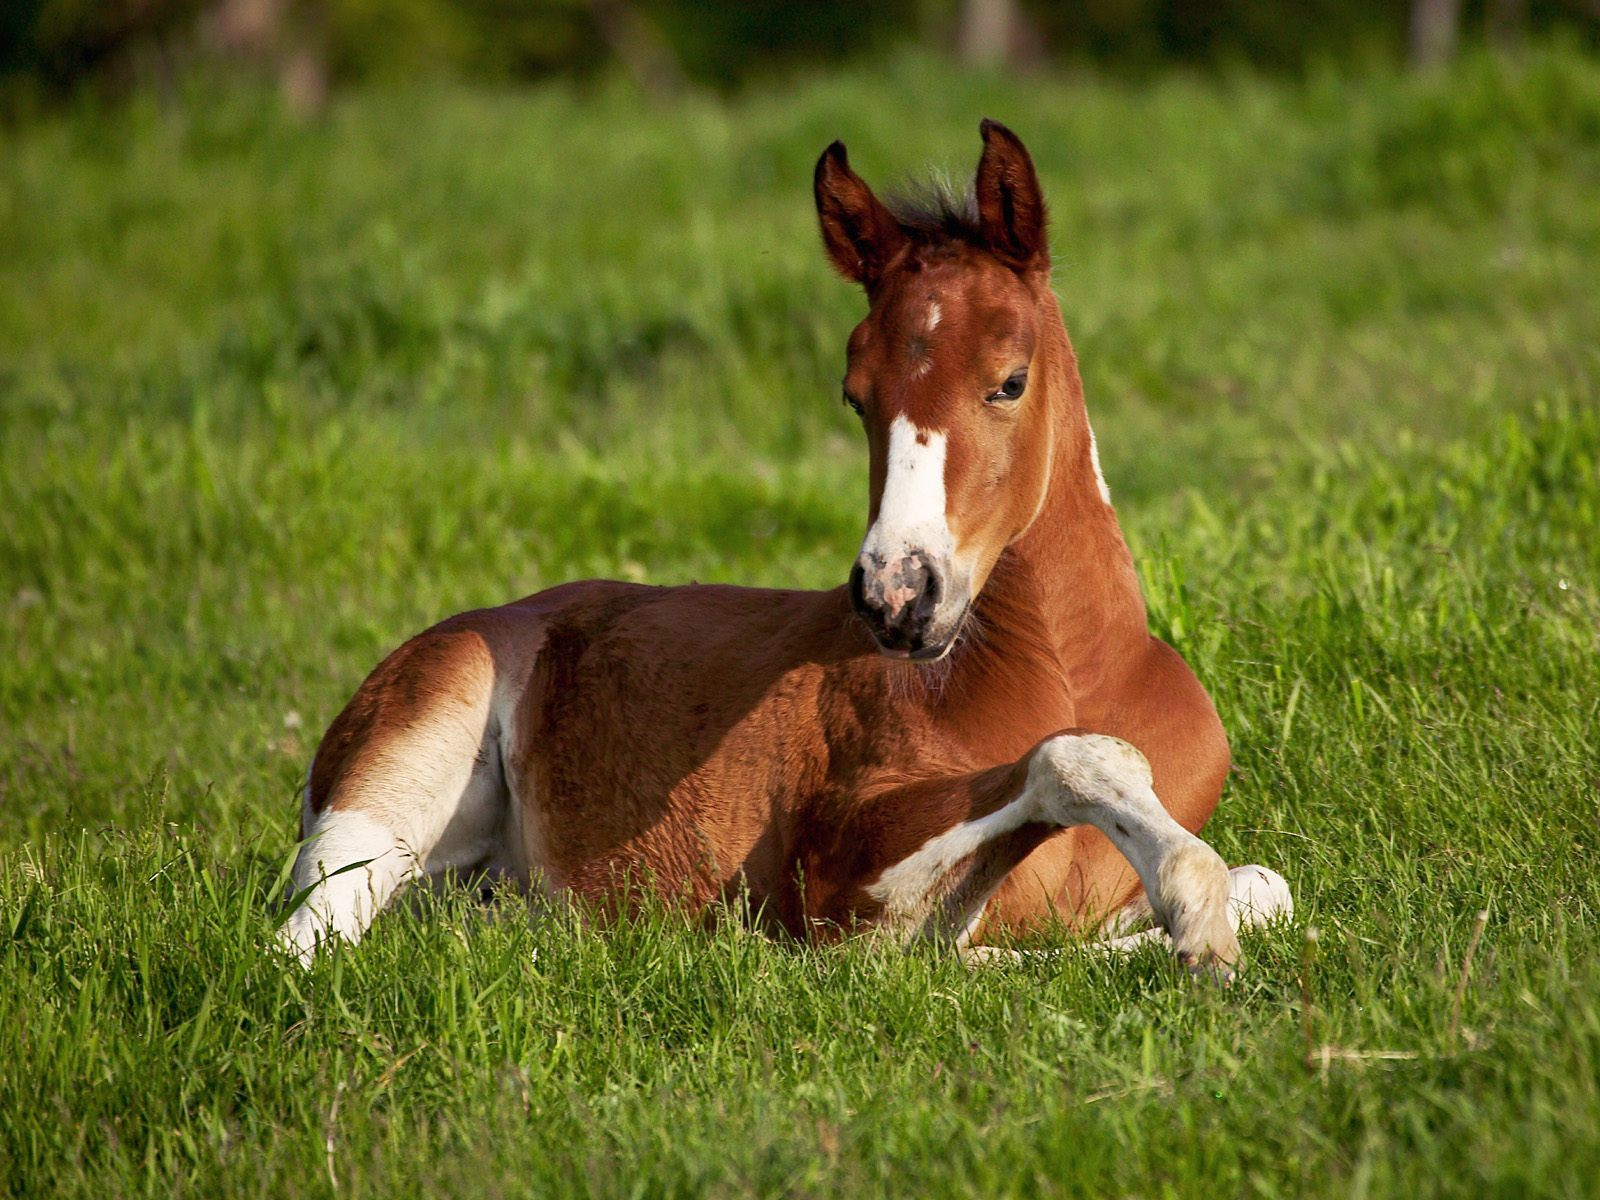 Baby Animals images horse foal HD wallpaper and background ...